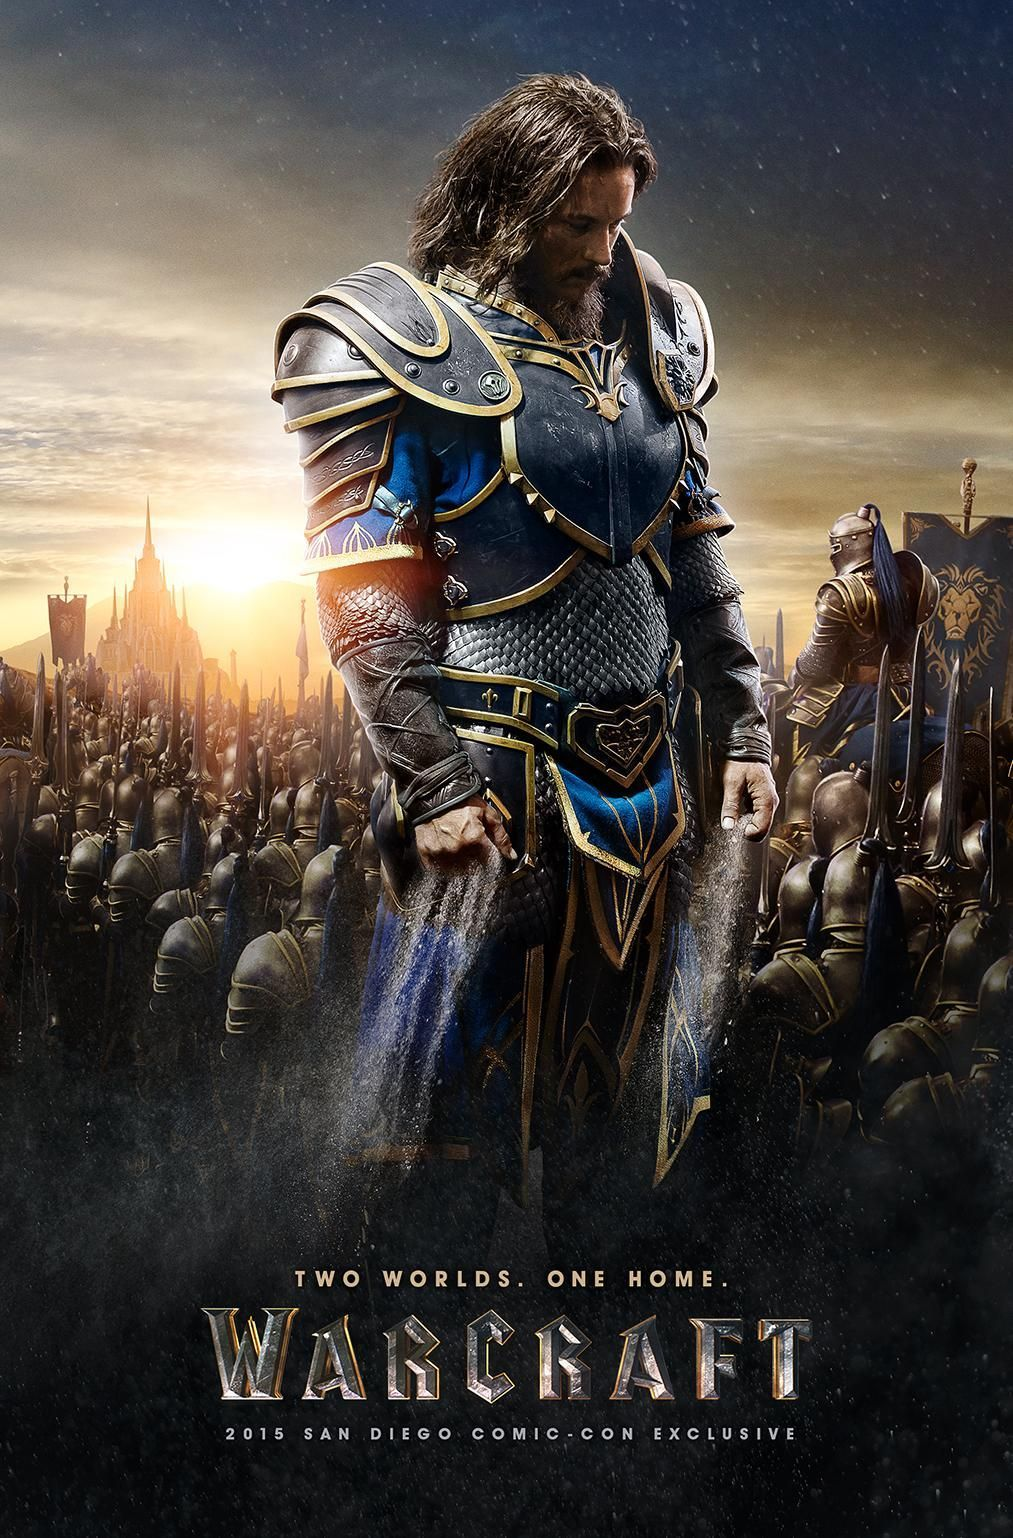 anduin lothar in warcraft movie wallpaper | movies hd wallpapers